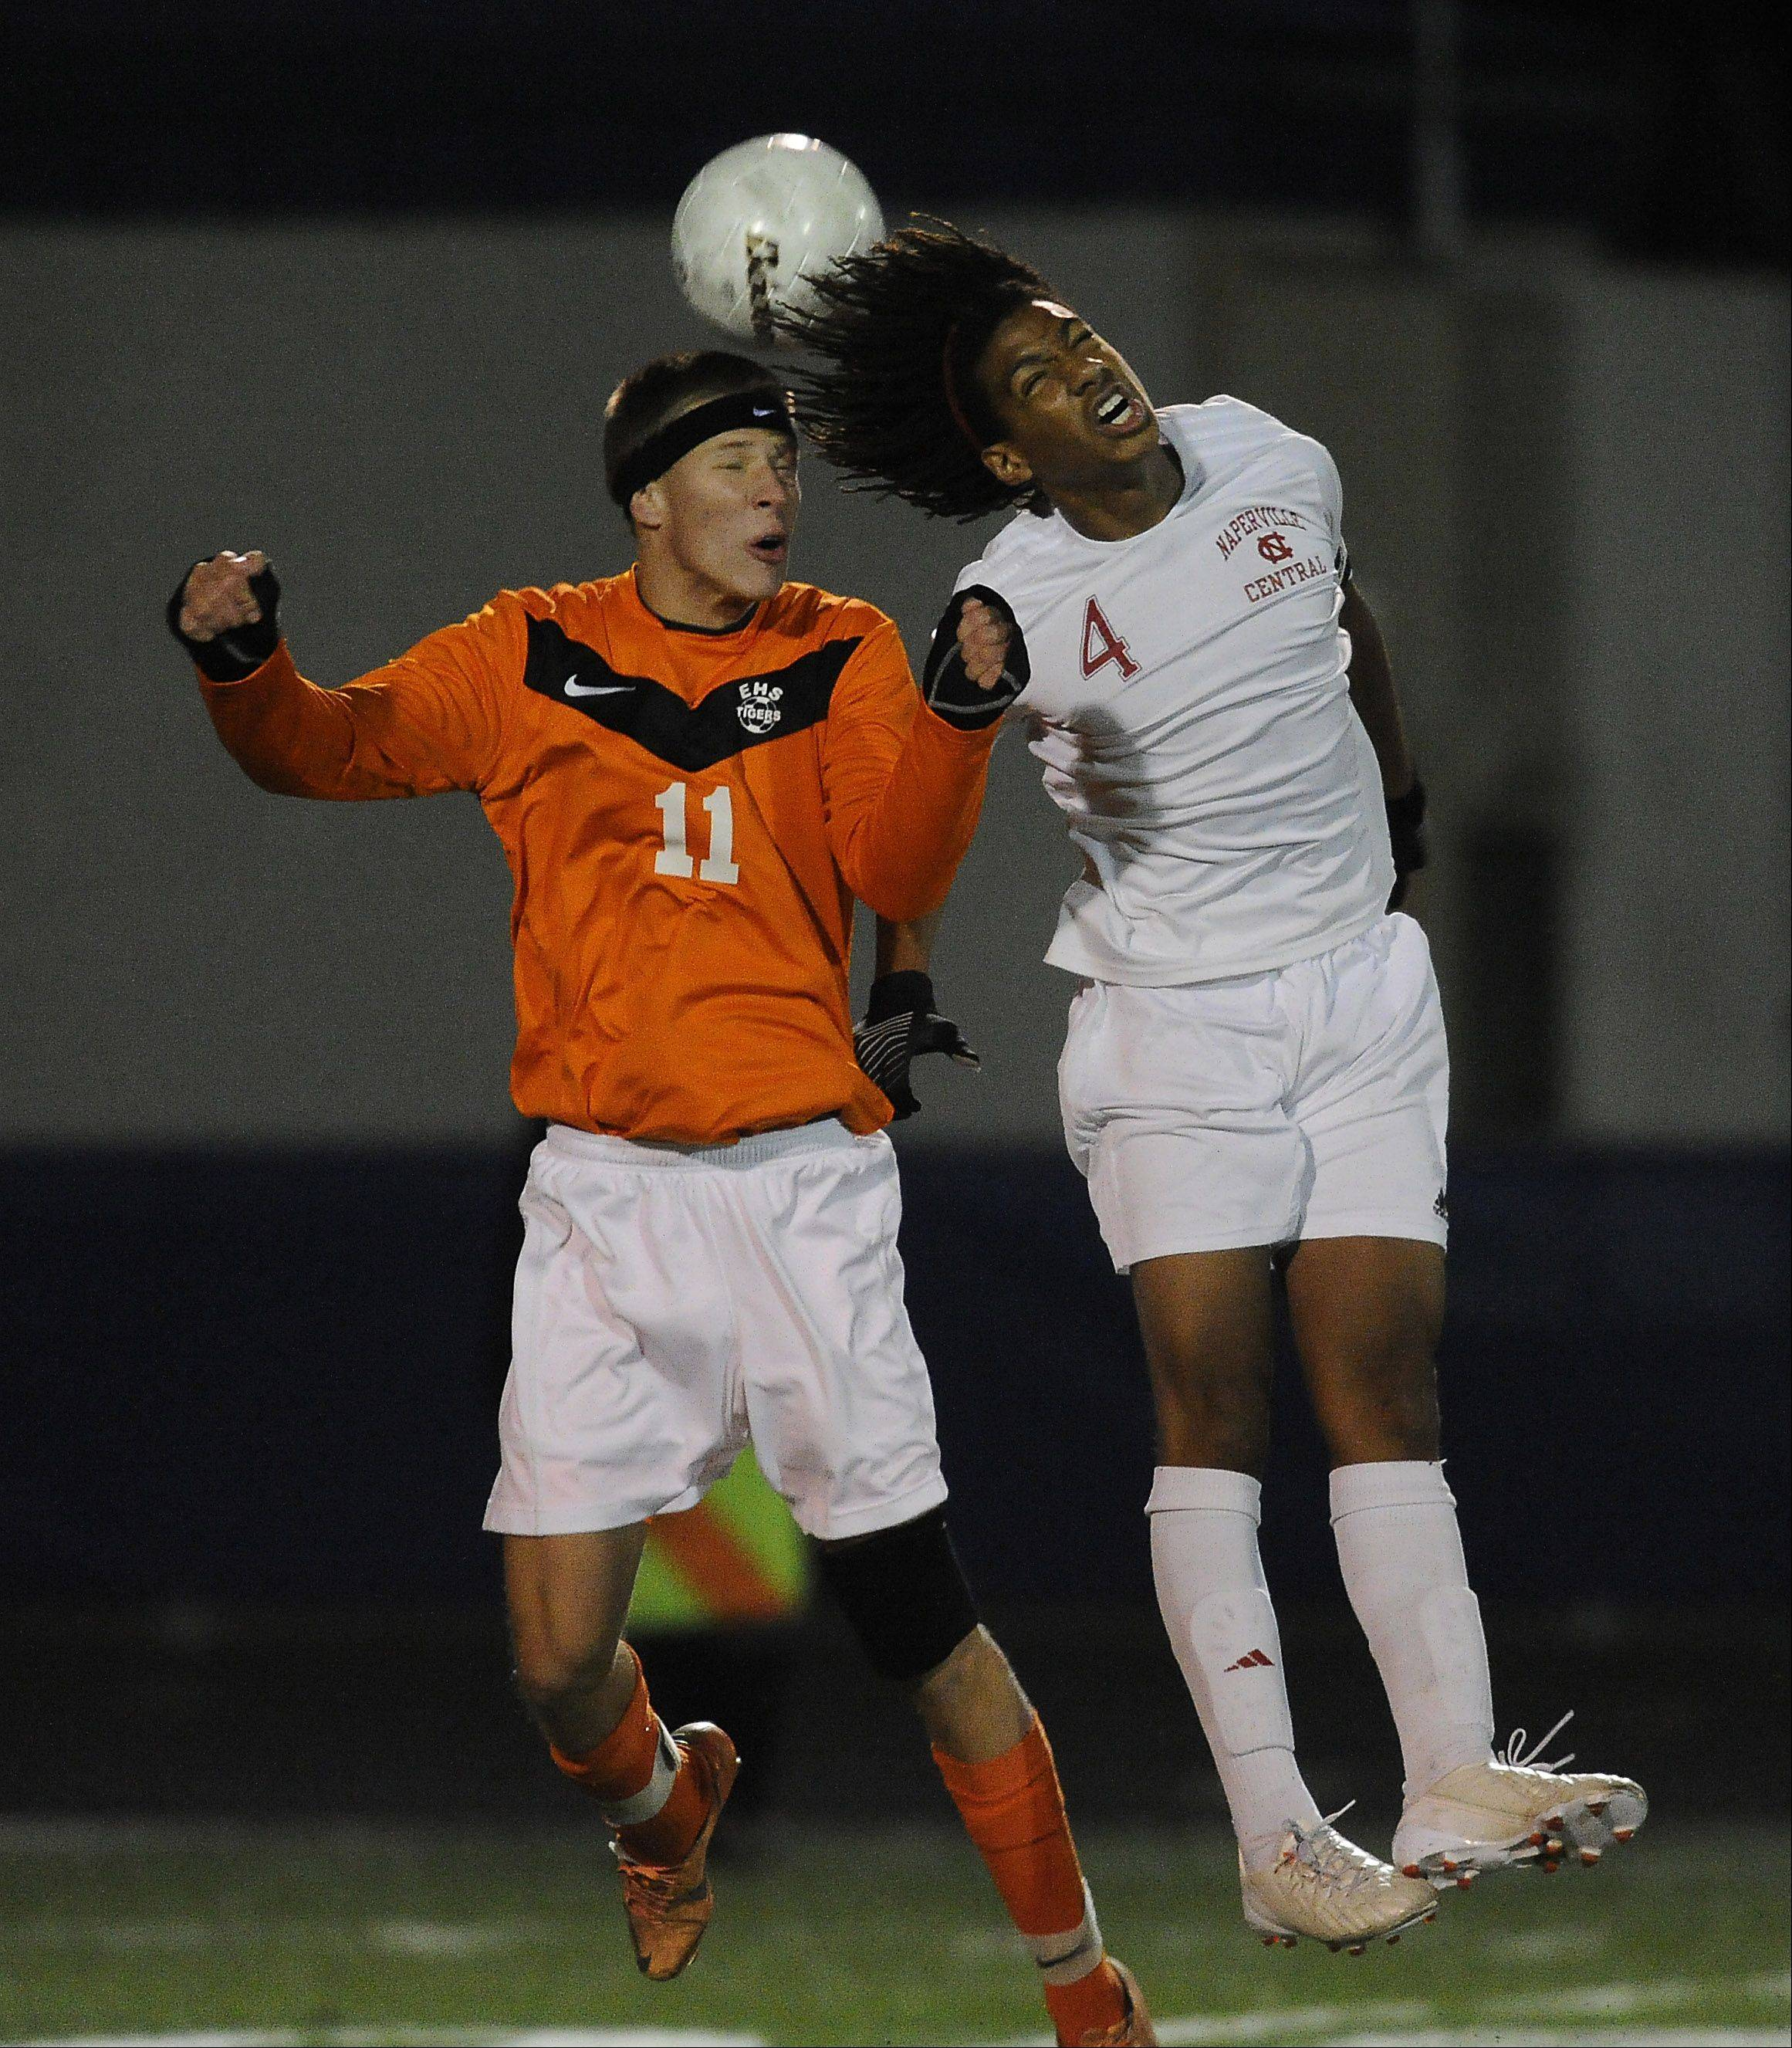 Naperville Central's Devon Amoo-Mensah goes up against Edwardsville's Justin Lowry for control of the ball during Friday's Class 3A state soccer semifinals at Hoffman Estates High School.